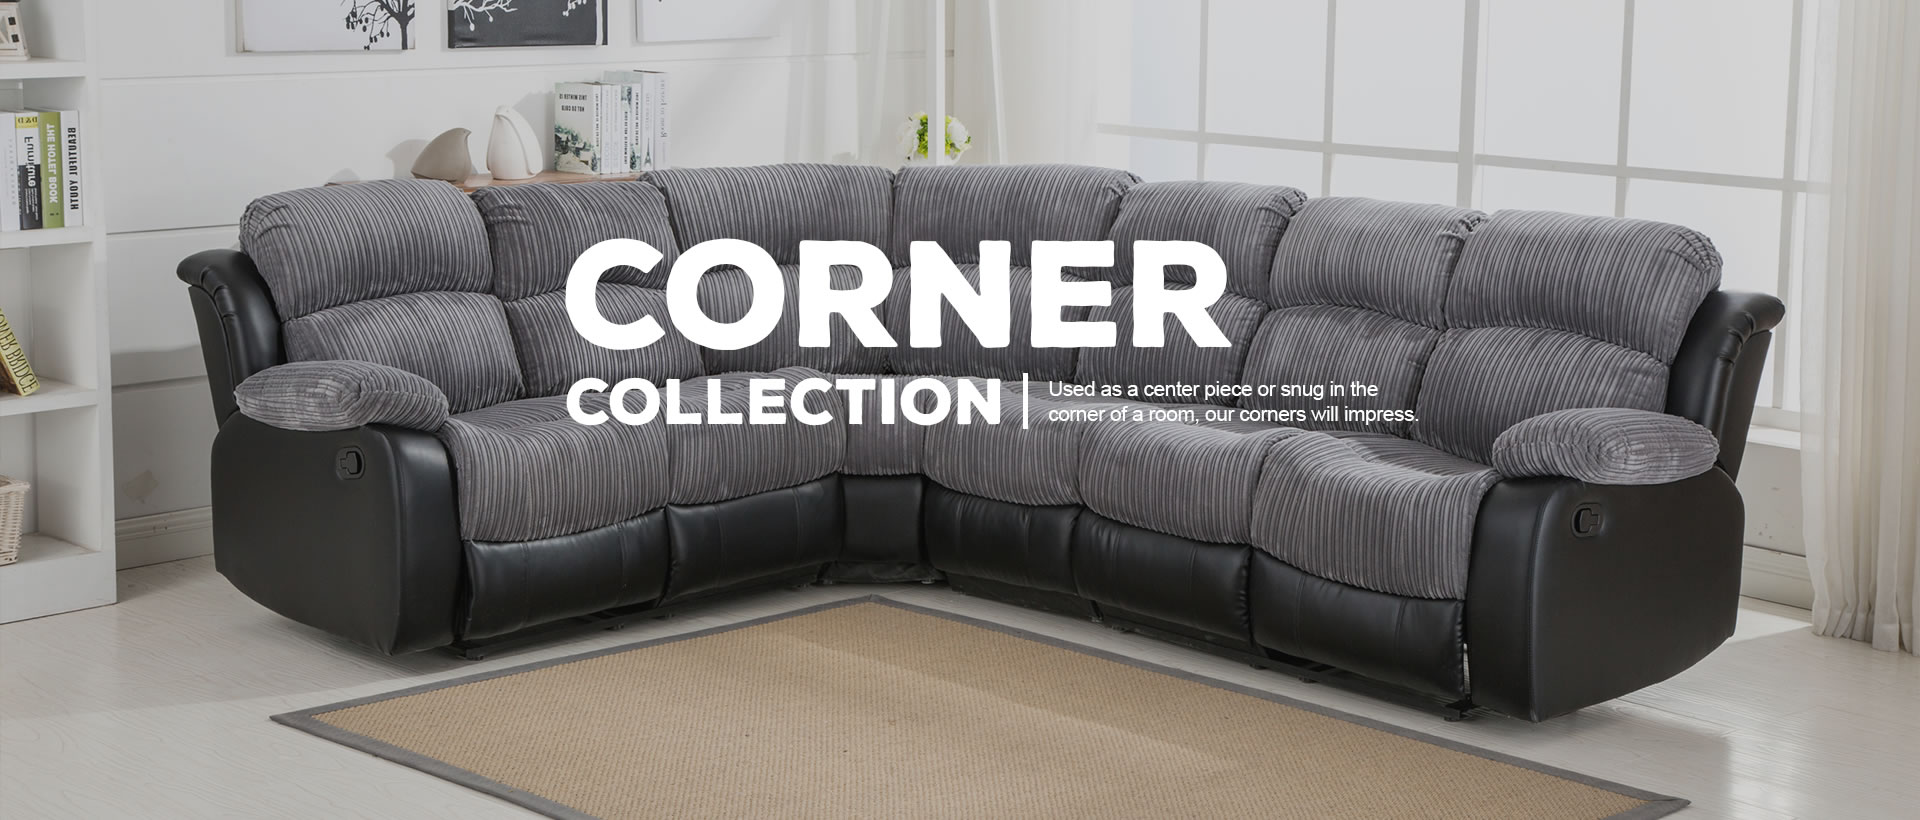 2 seater love chair walgreens transport parts sofas - the uk's largest sofa website